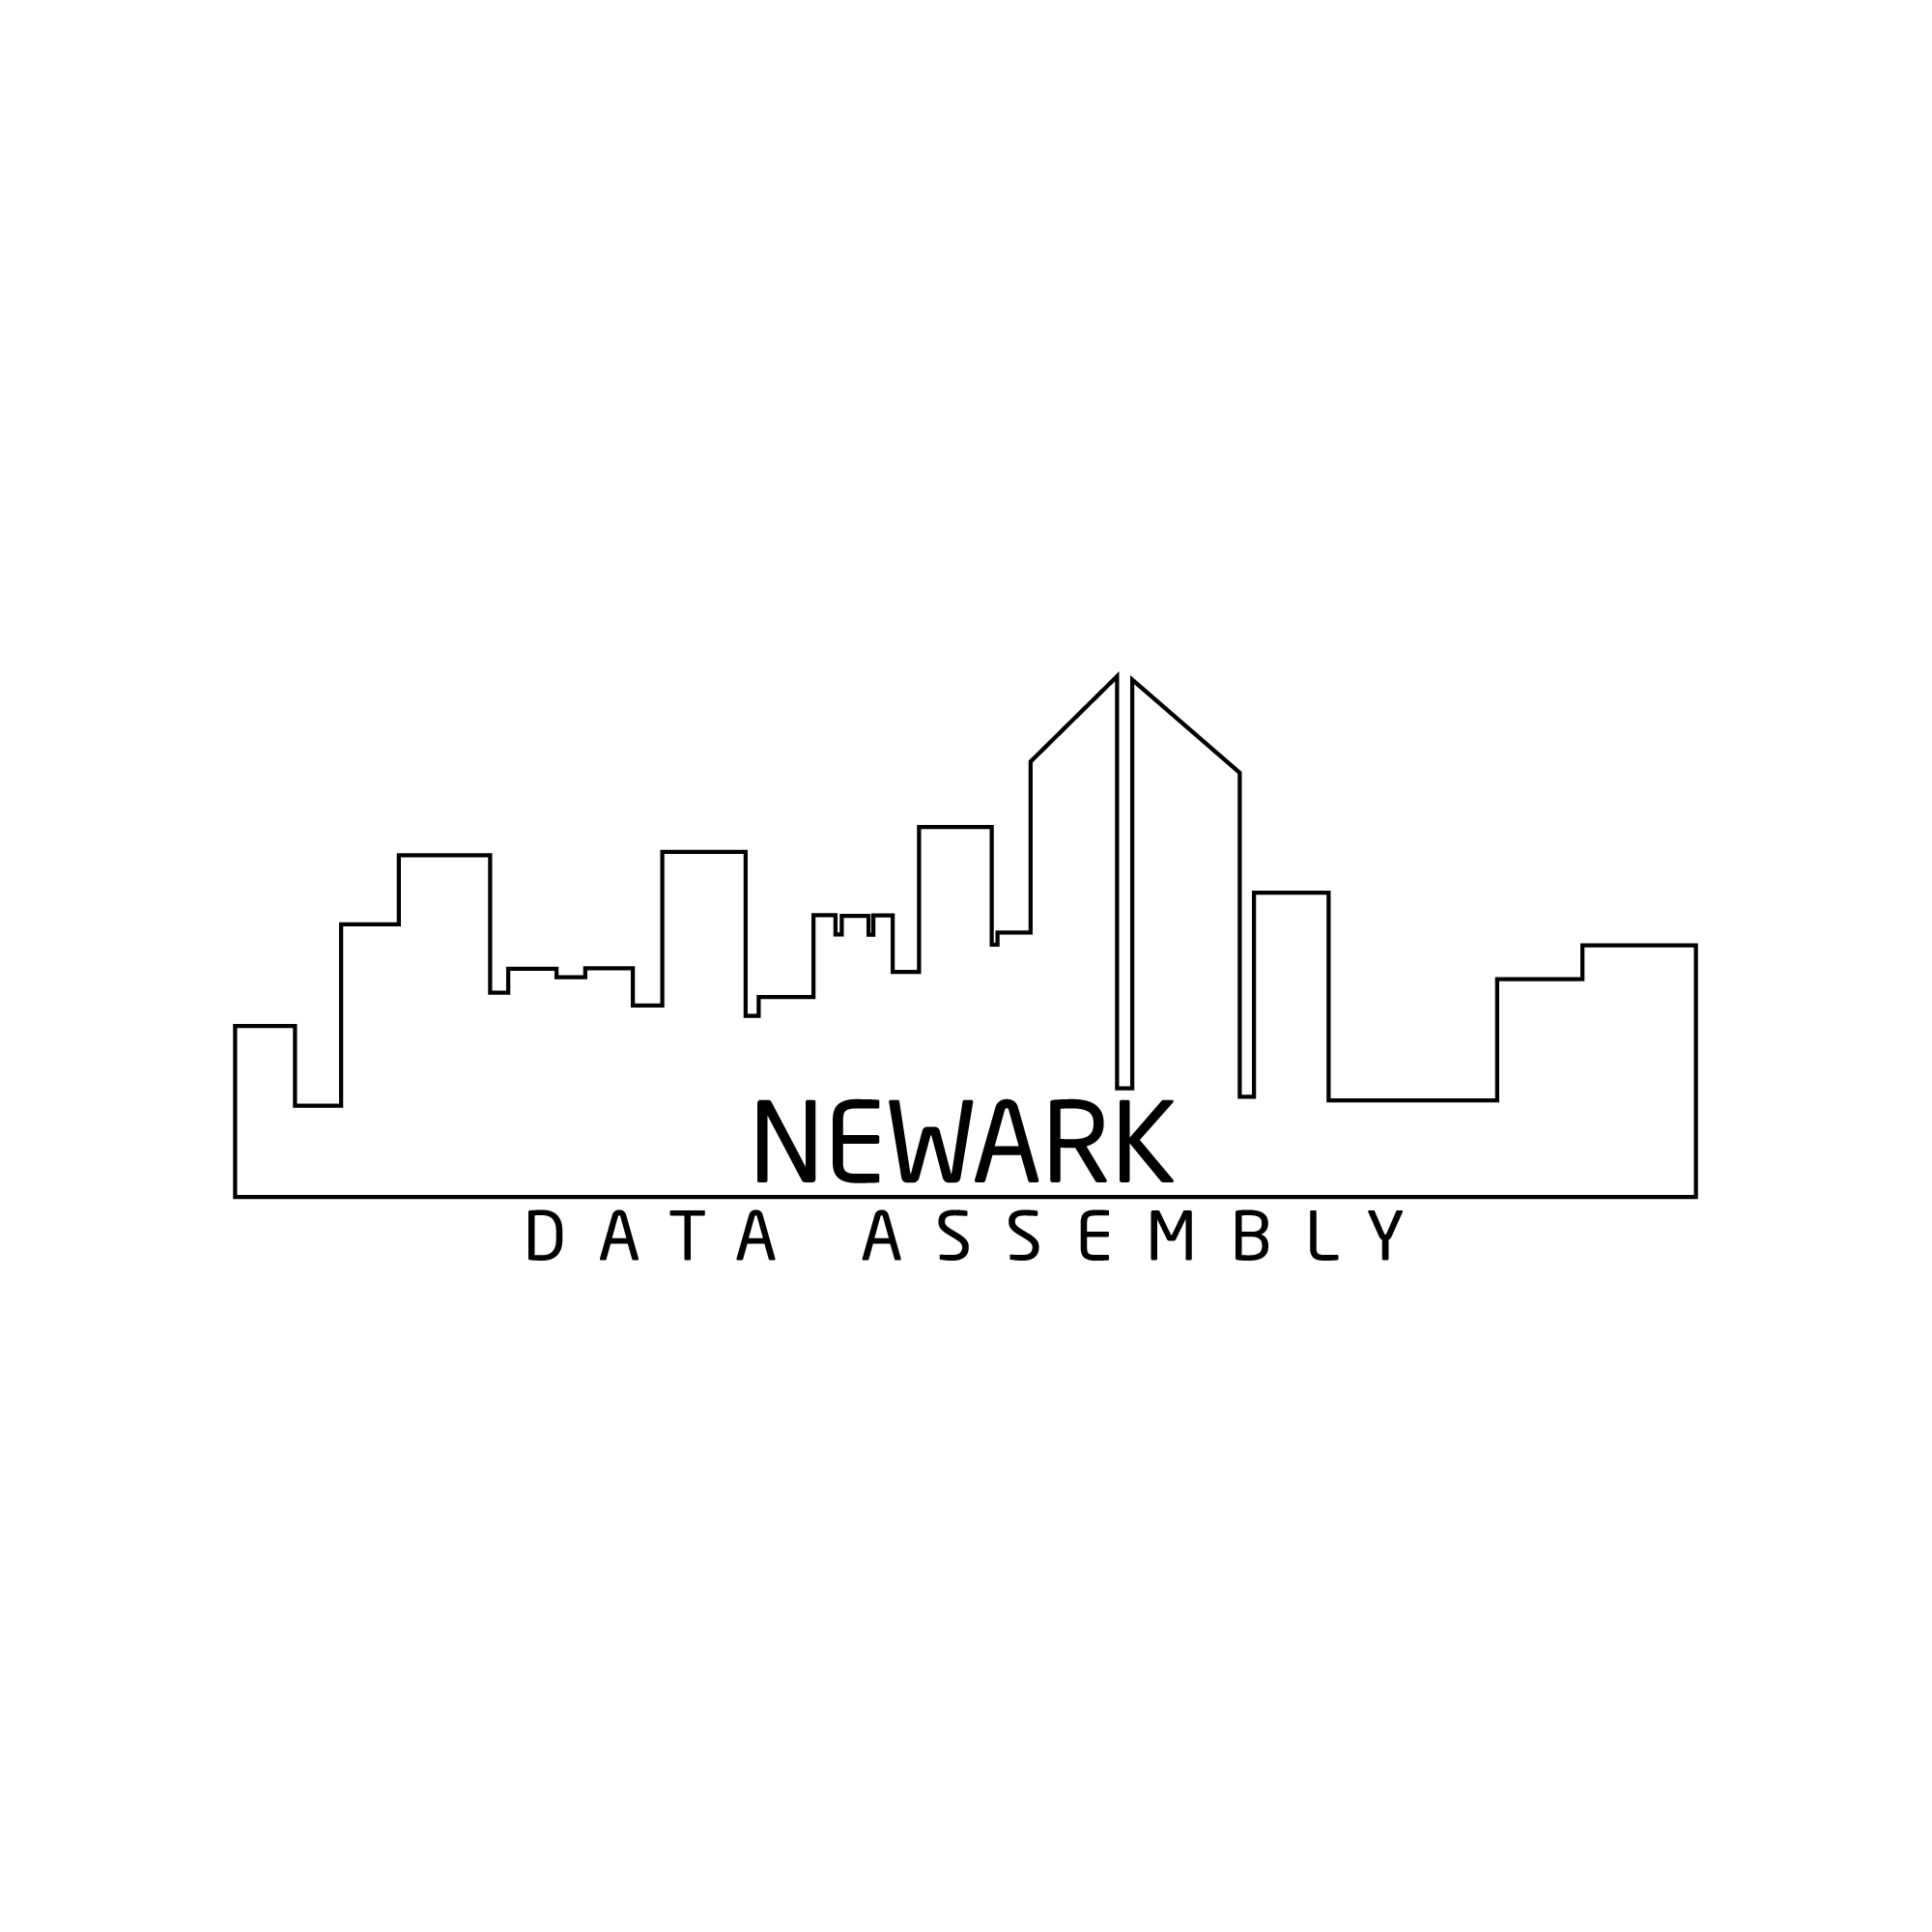 newark-data-assembly